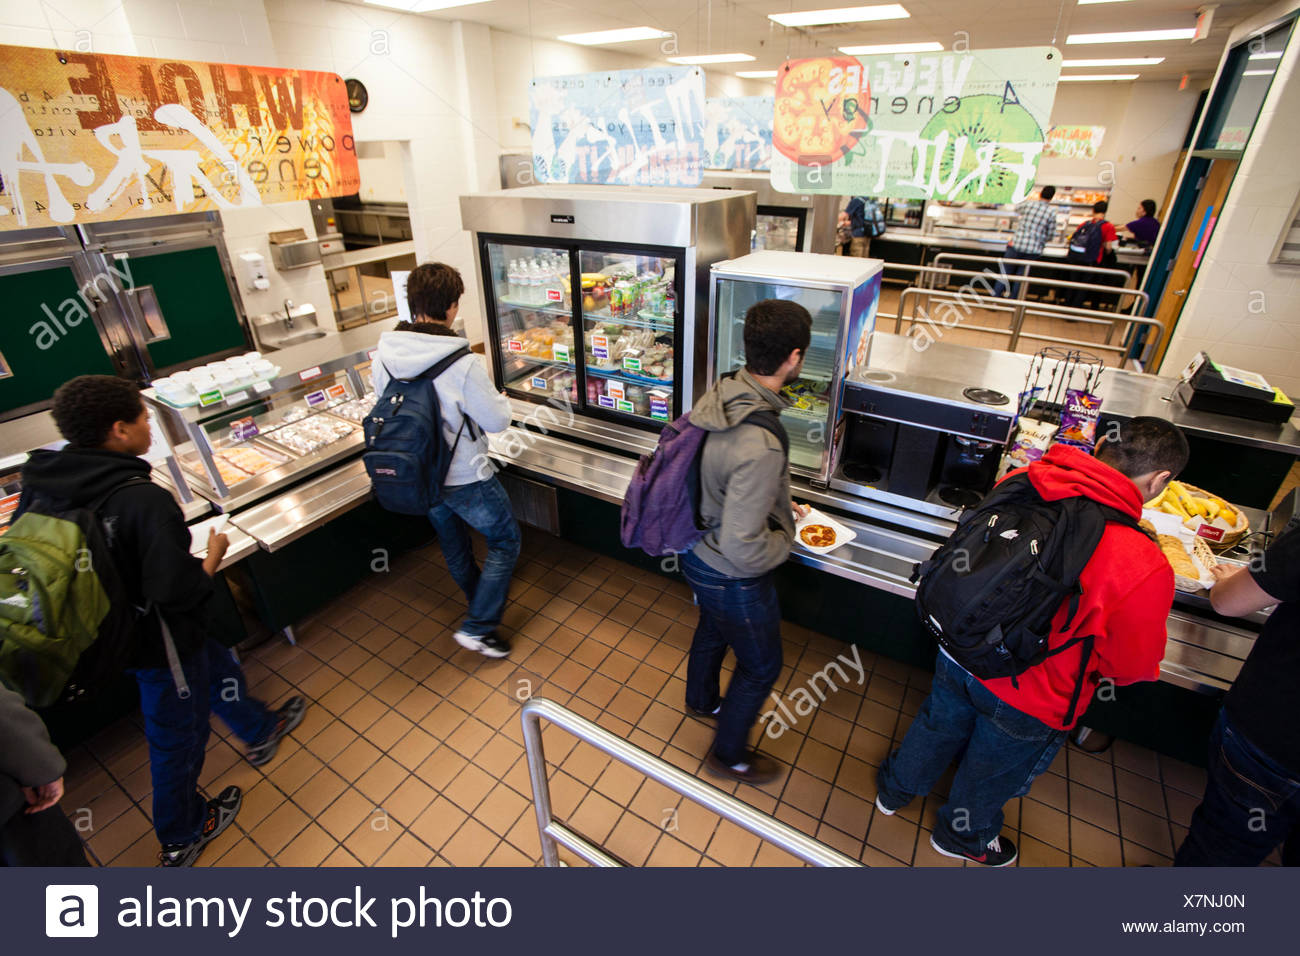 Teenagers in a cafeteria line in high school. - Stock Image